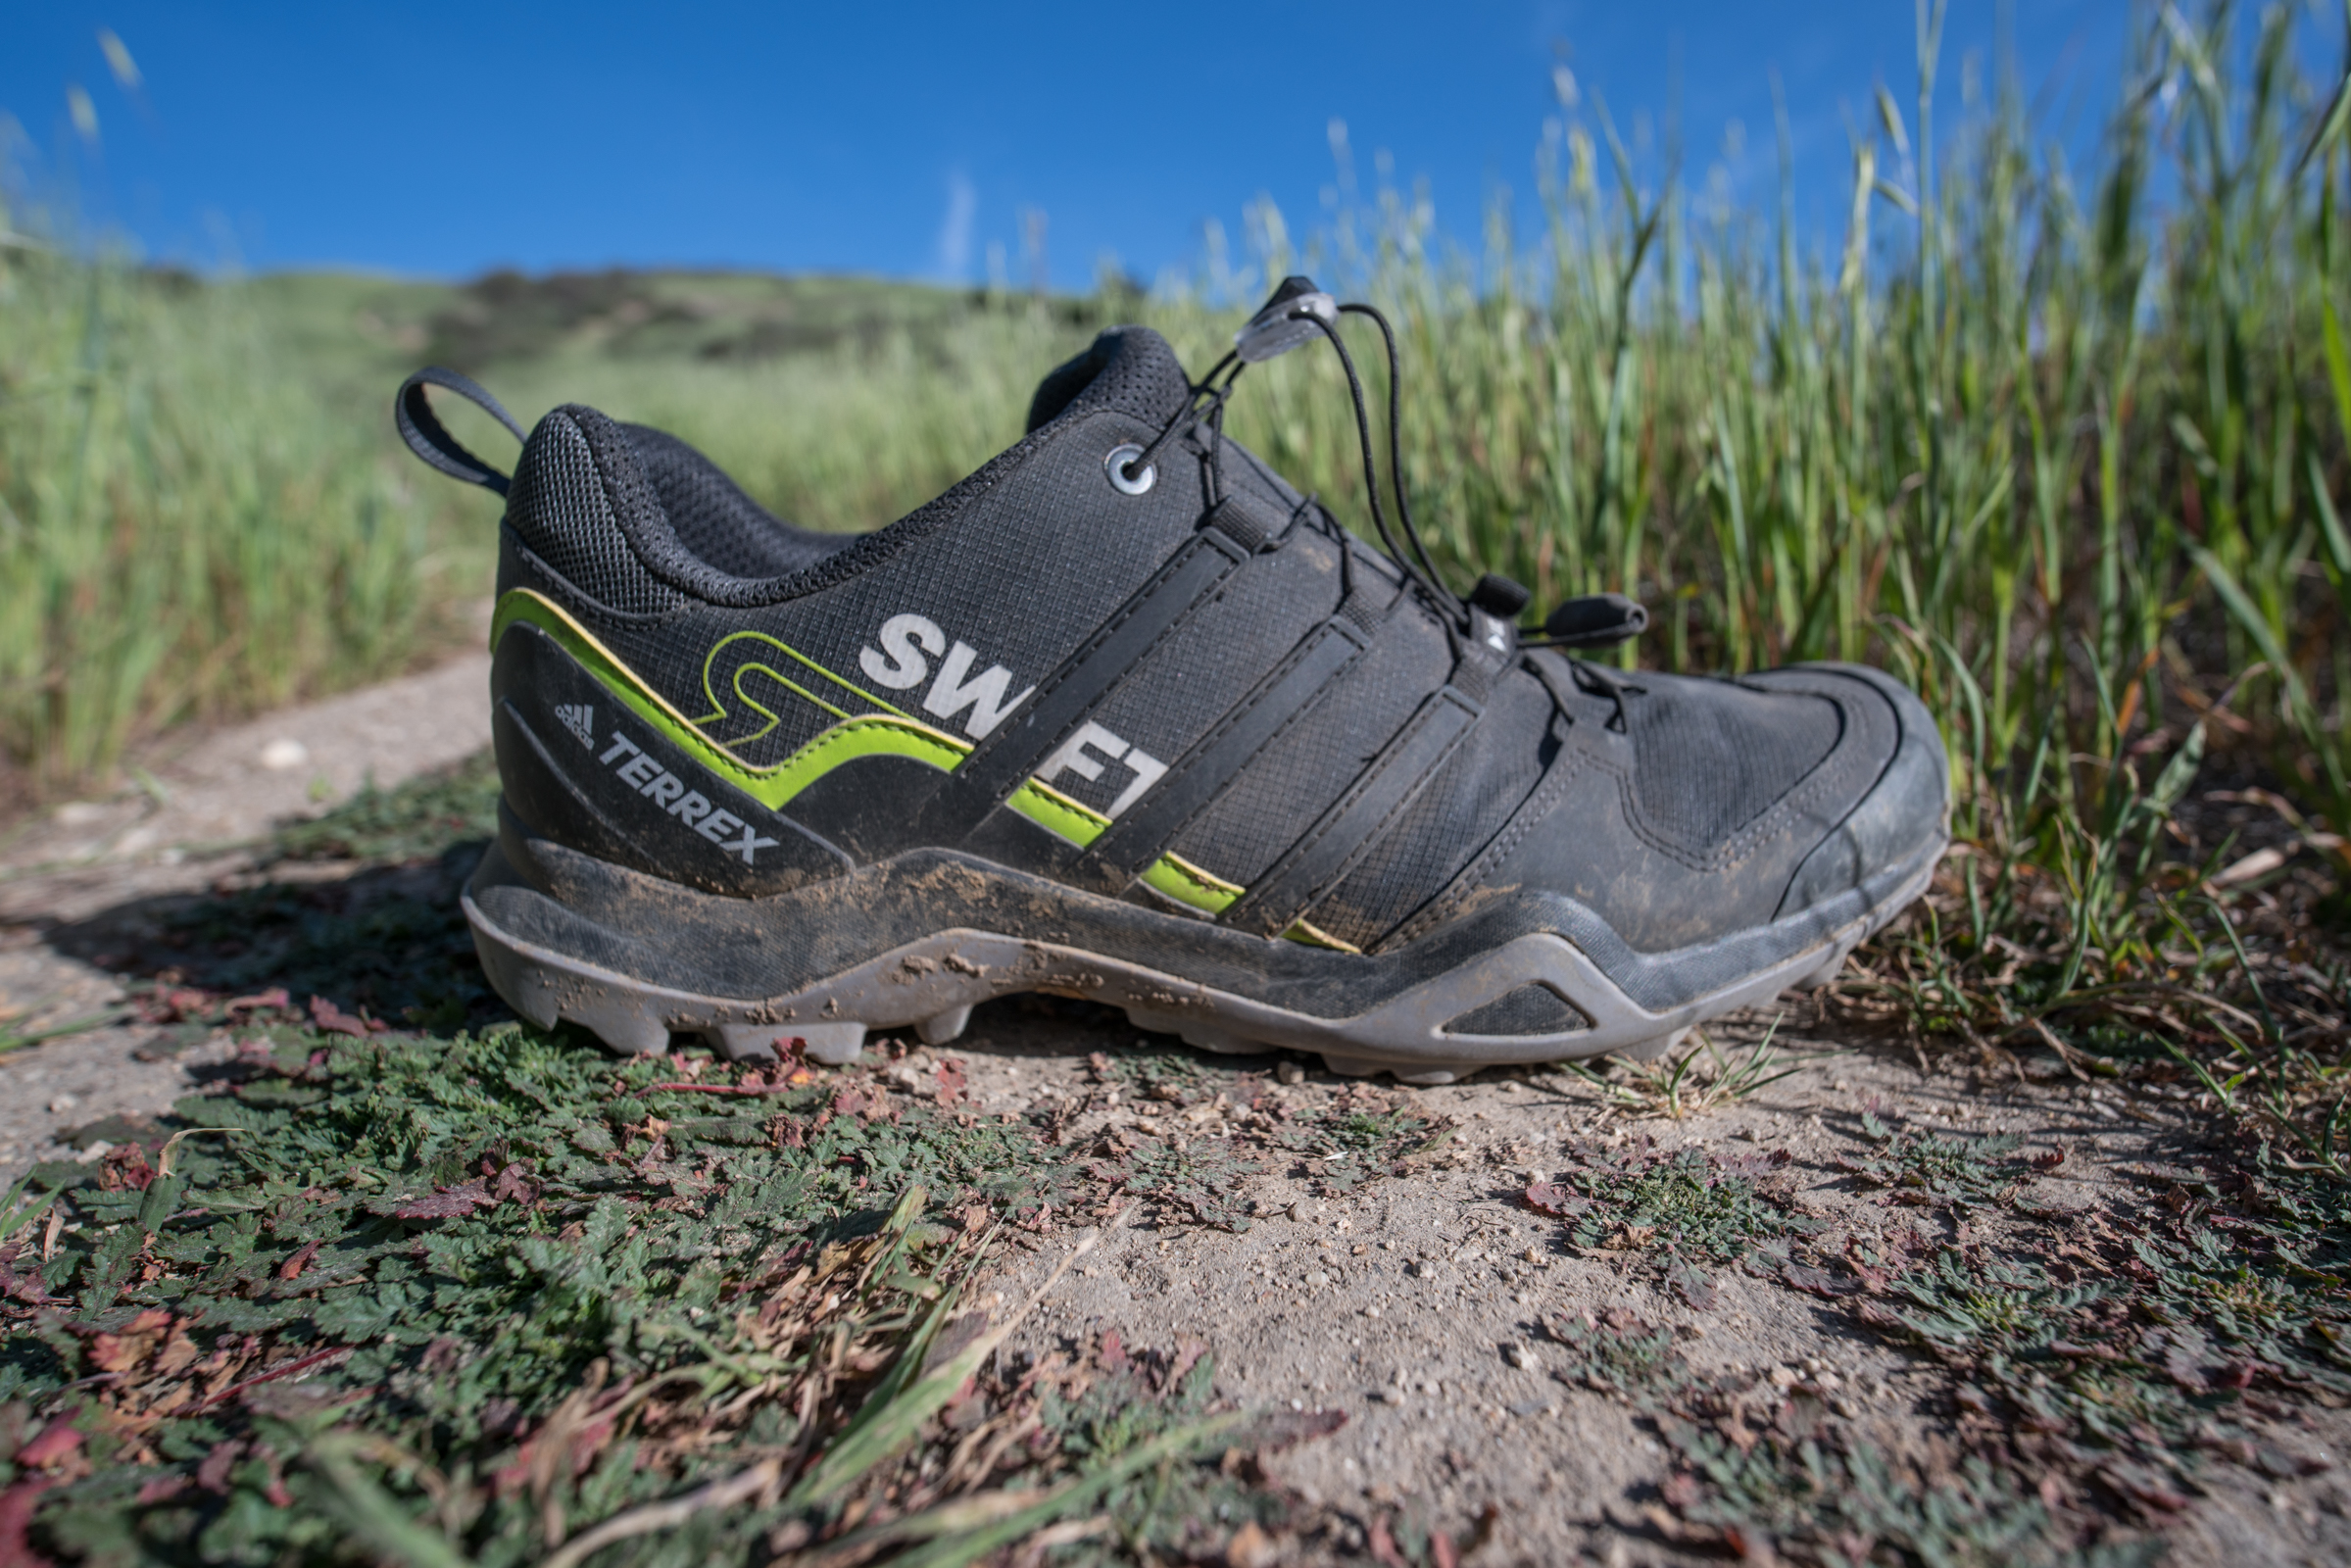 Gear Review: Adidas Terrex Swift R2 Hiking Shoes Trail to